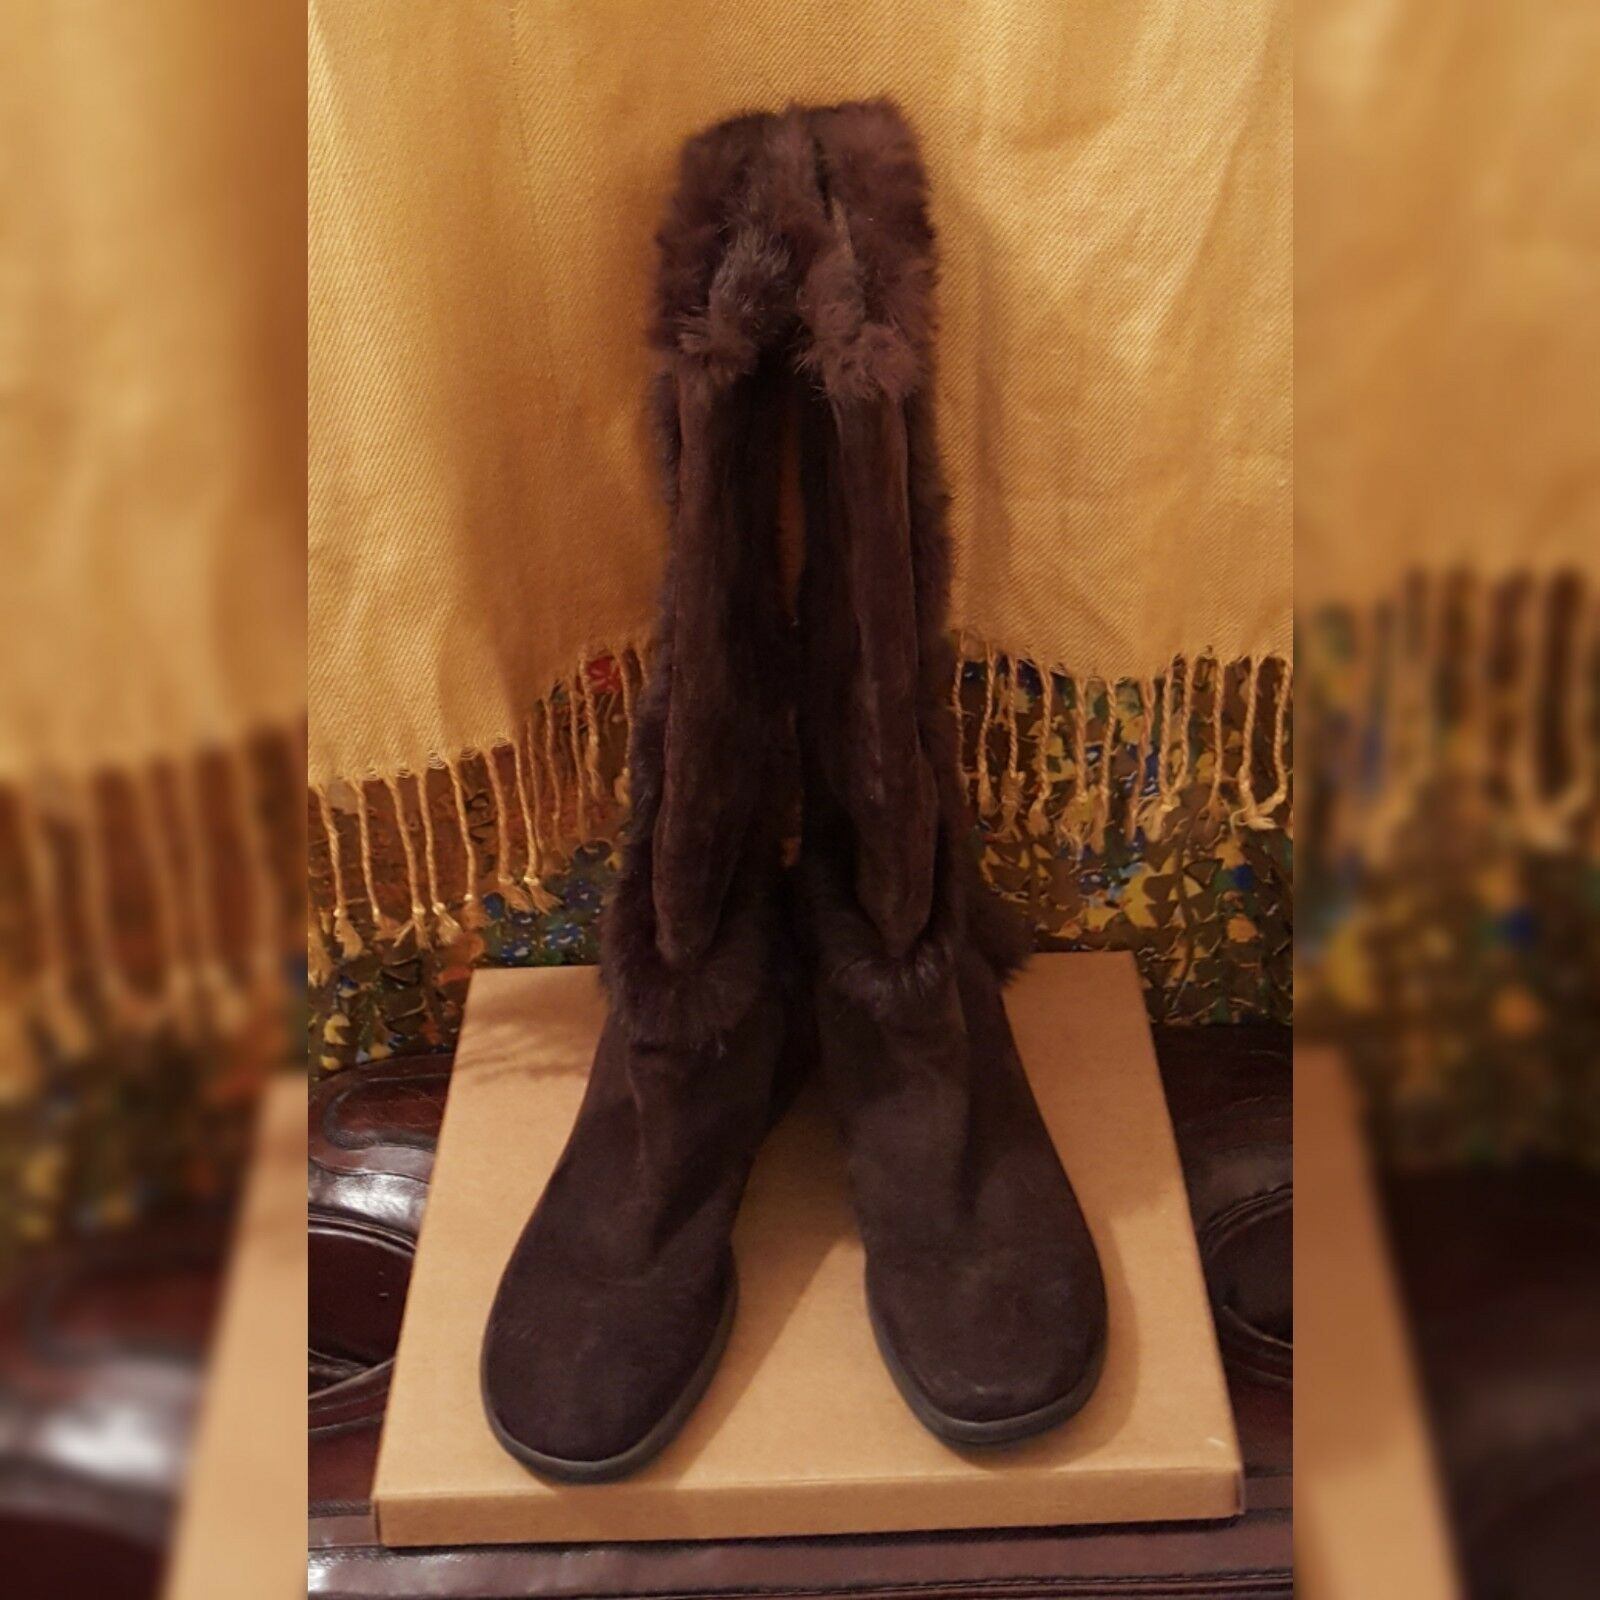 Via Spiga Tall Brown Suede or Shearling Boots, Pre-owned, 8.5M